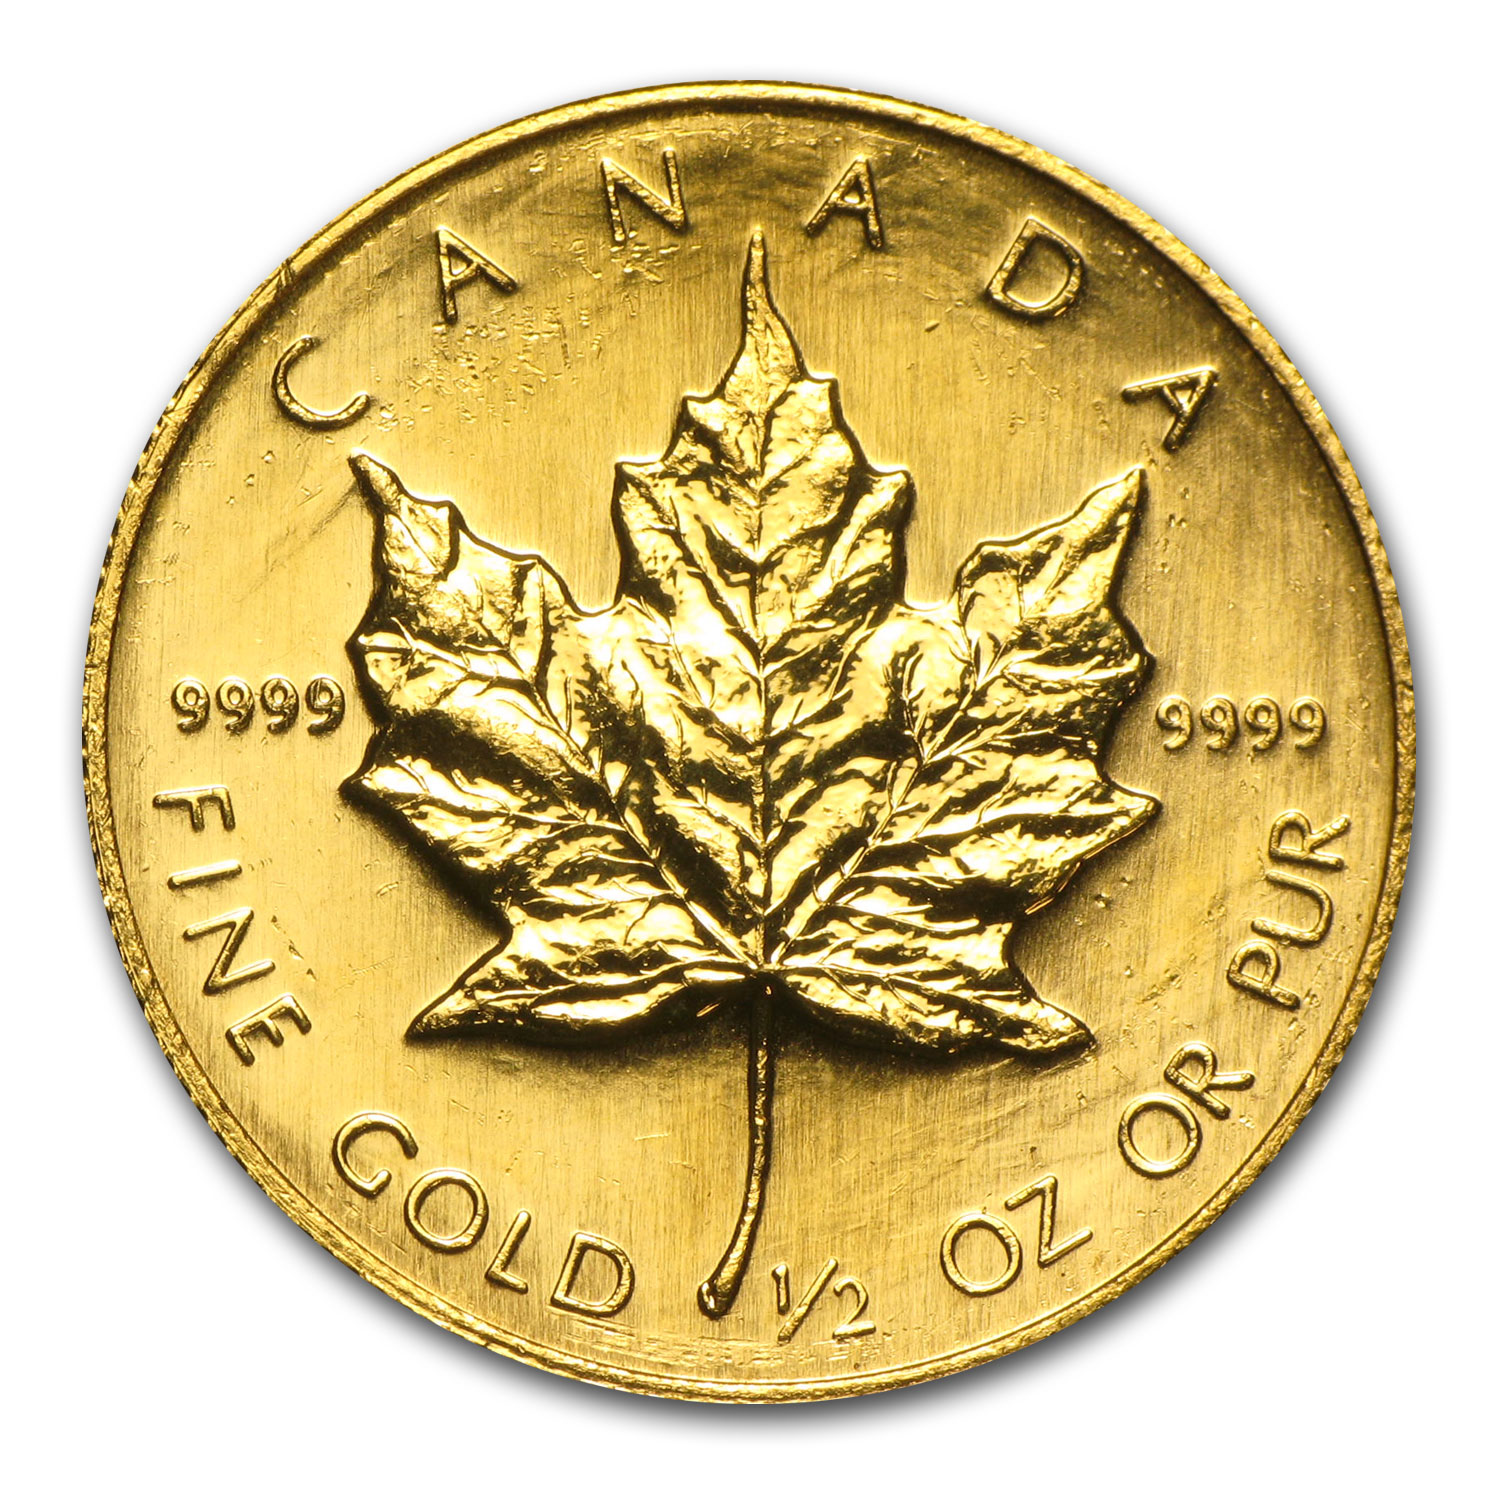 1/2 oz Gold Canadian Maple Leaf - Random Year (lightly scratched)